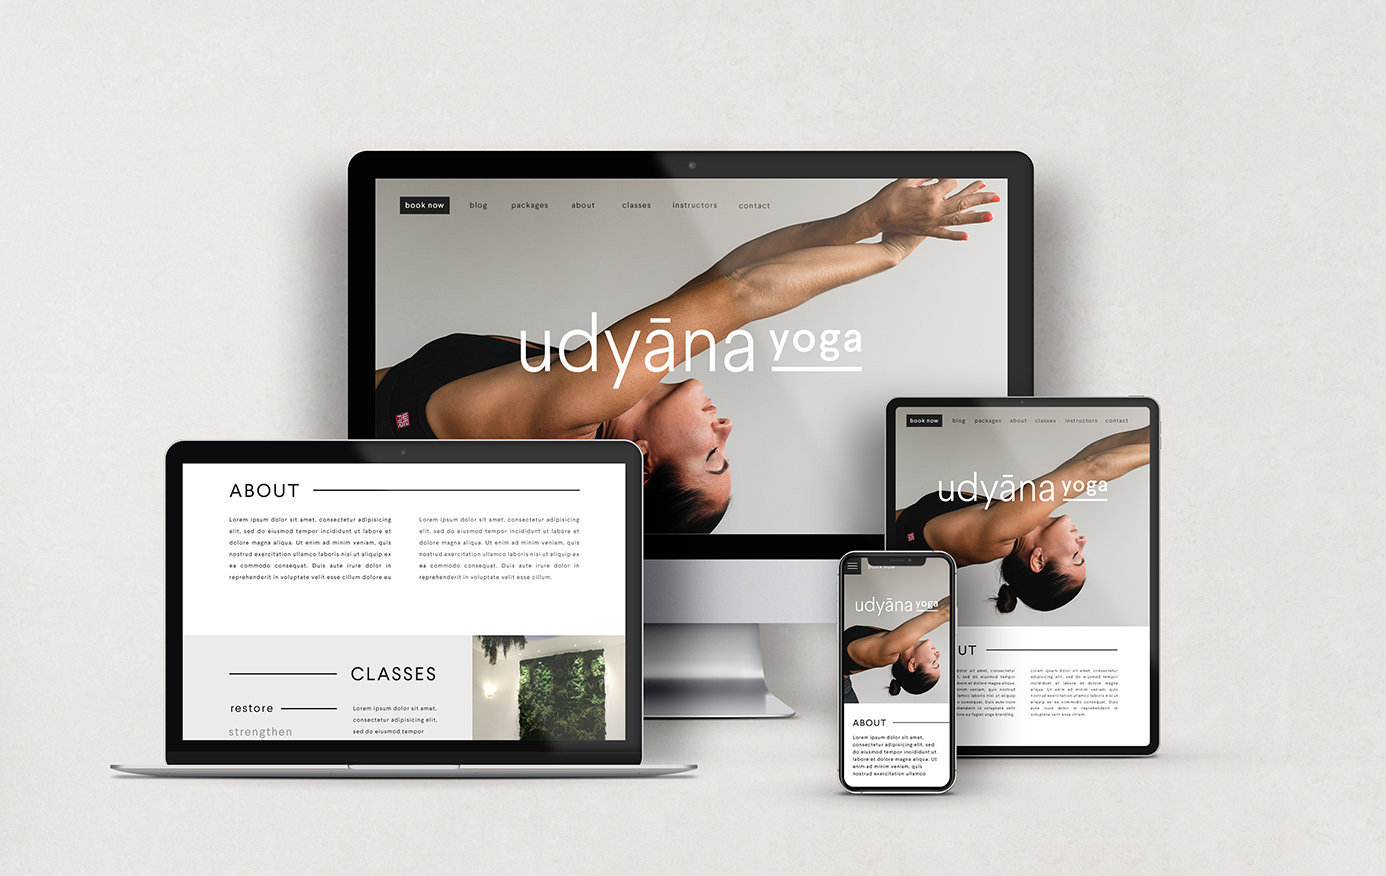 udyana_yoga_website_mockup